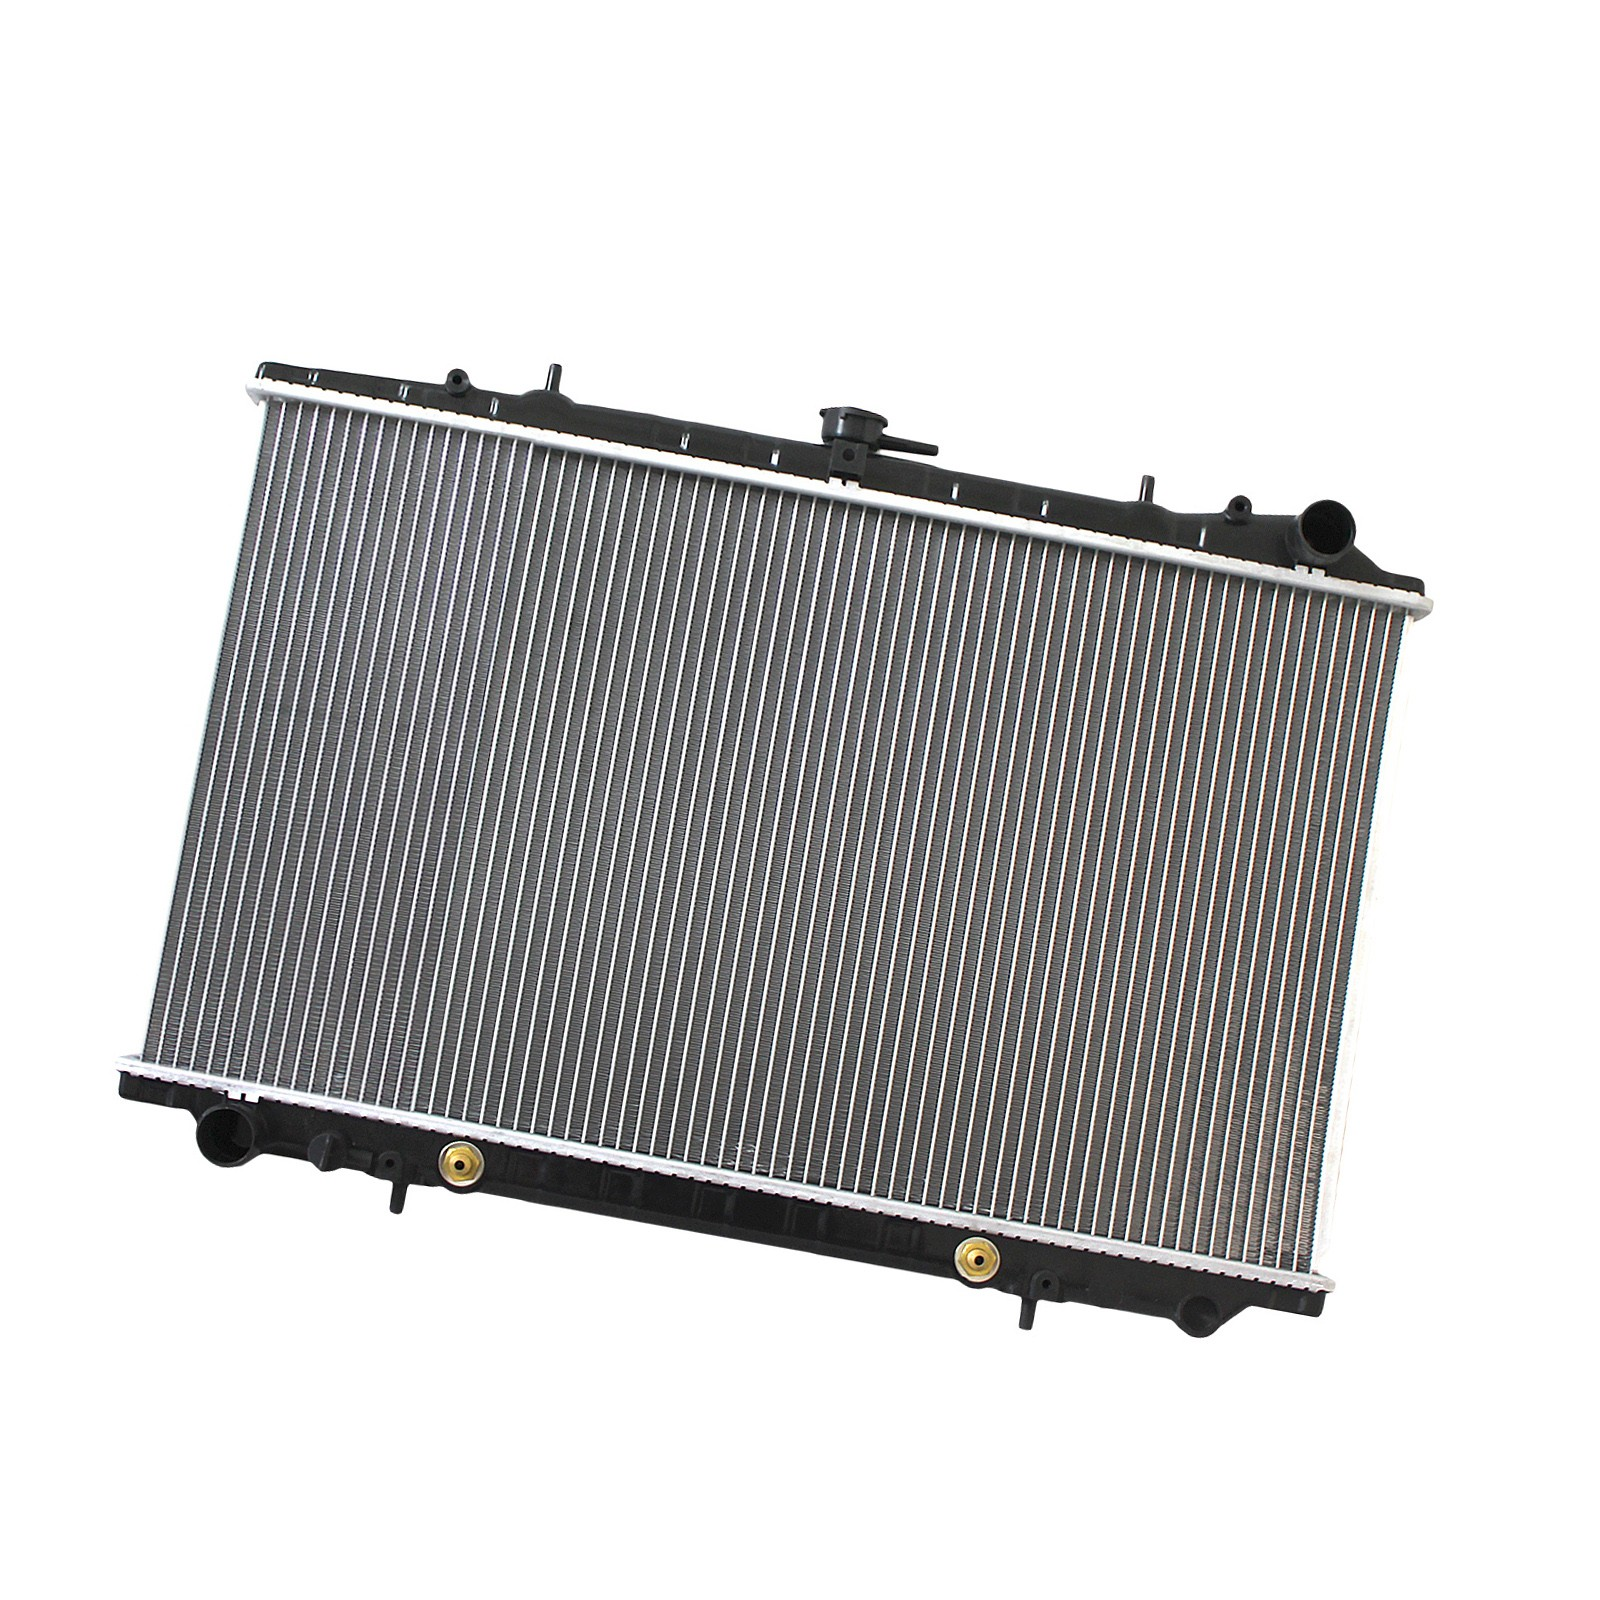 Dromedary-Mercedes Radiator Manufacture | New Radiator For 90-96 Nissan 300zx 30l-3